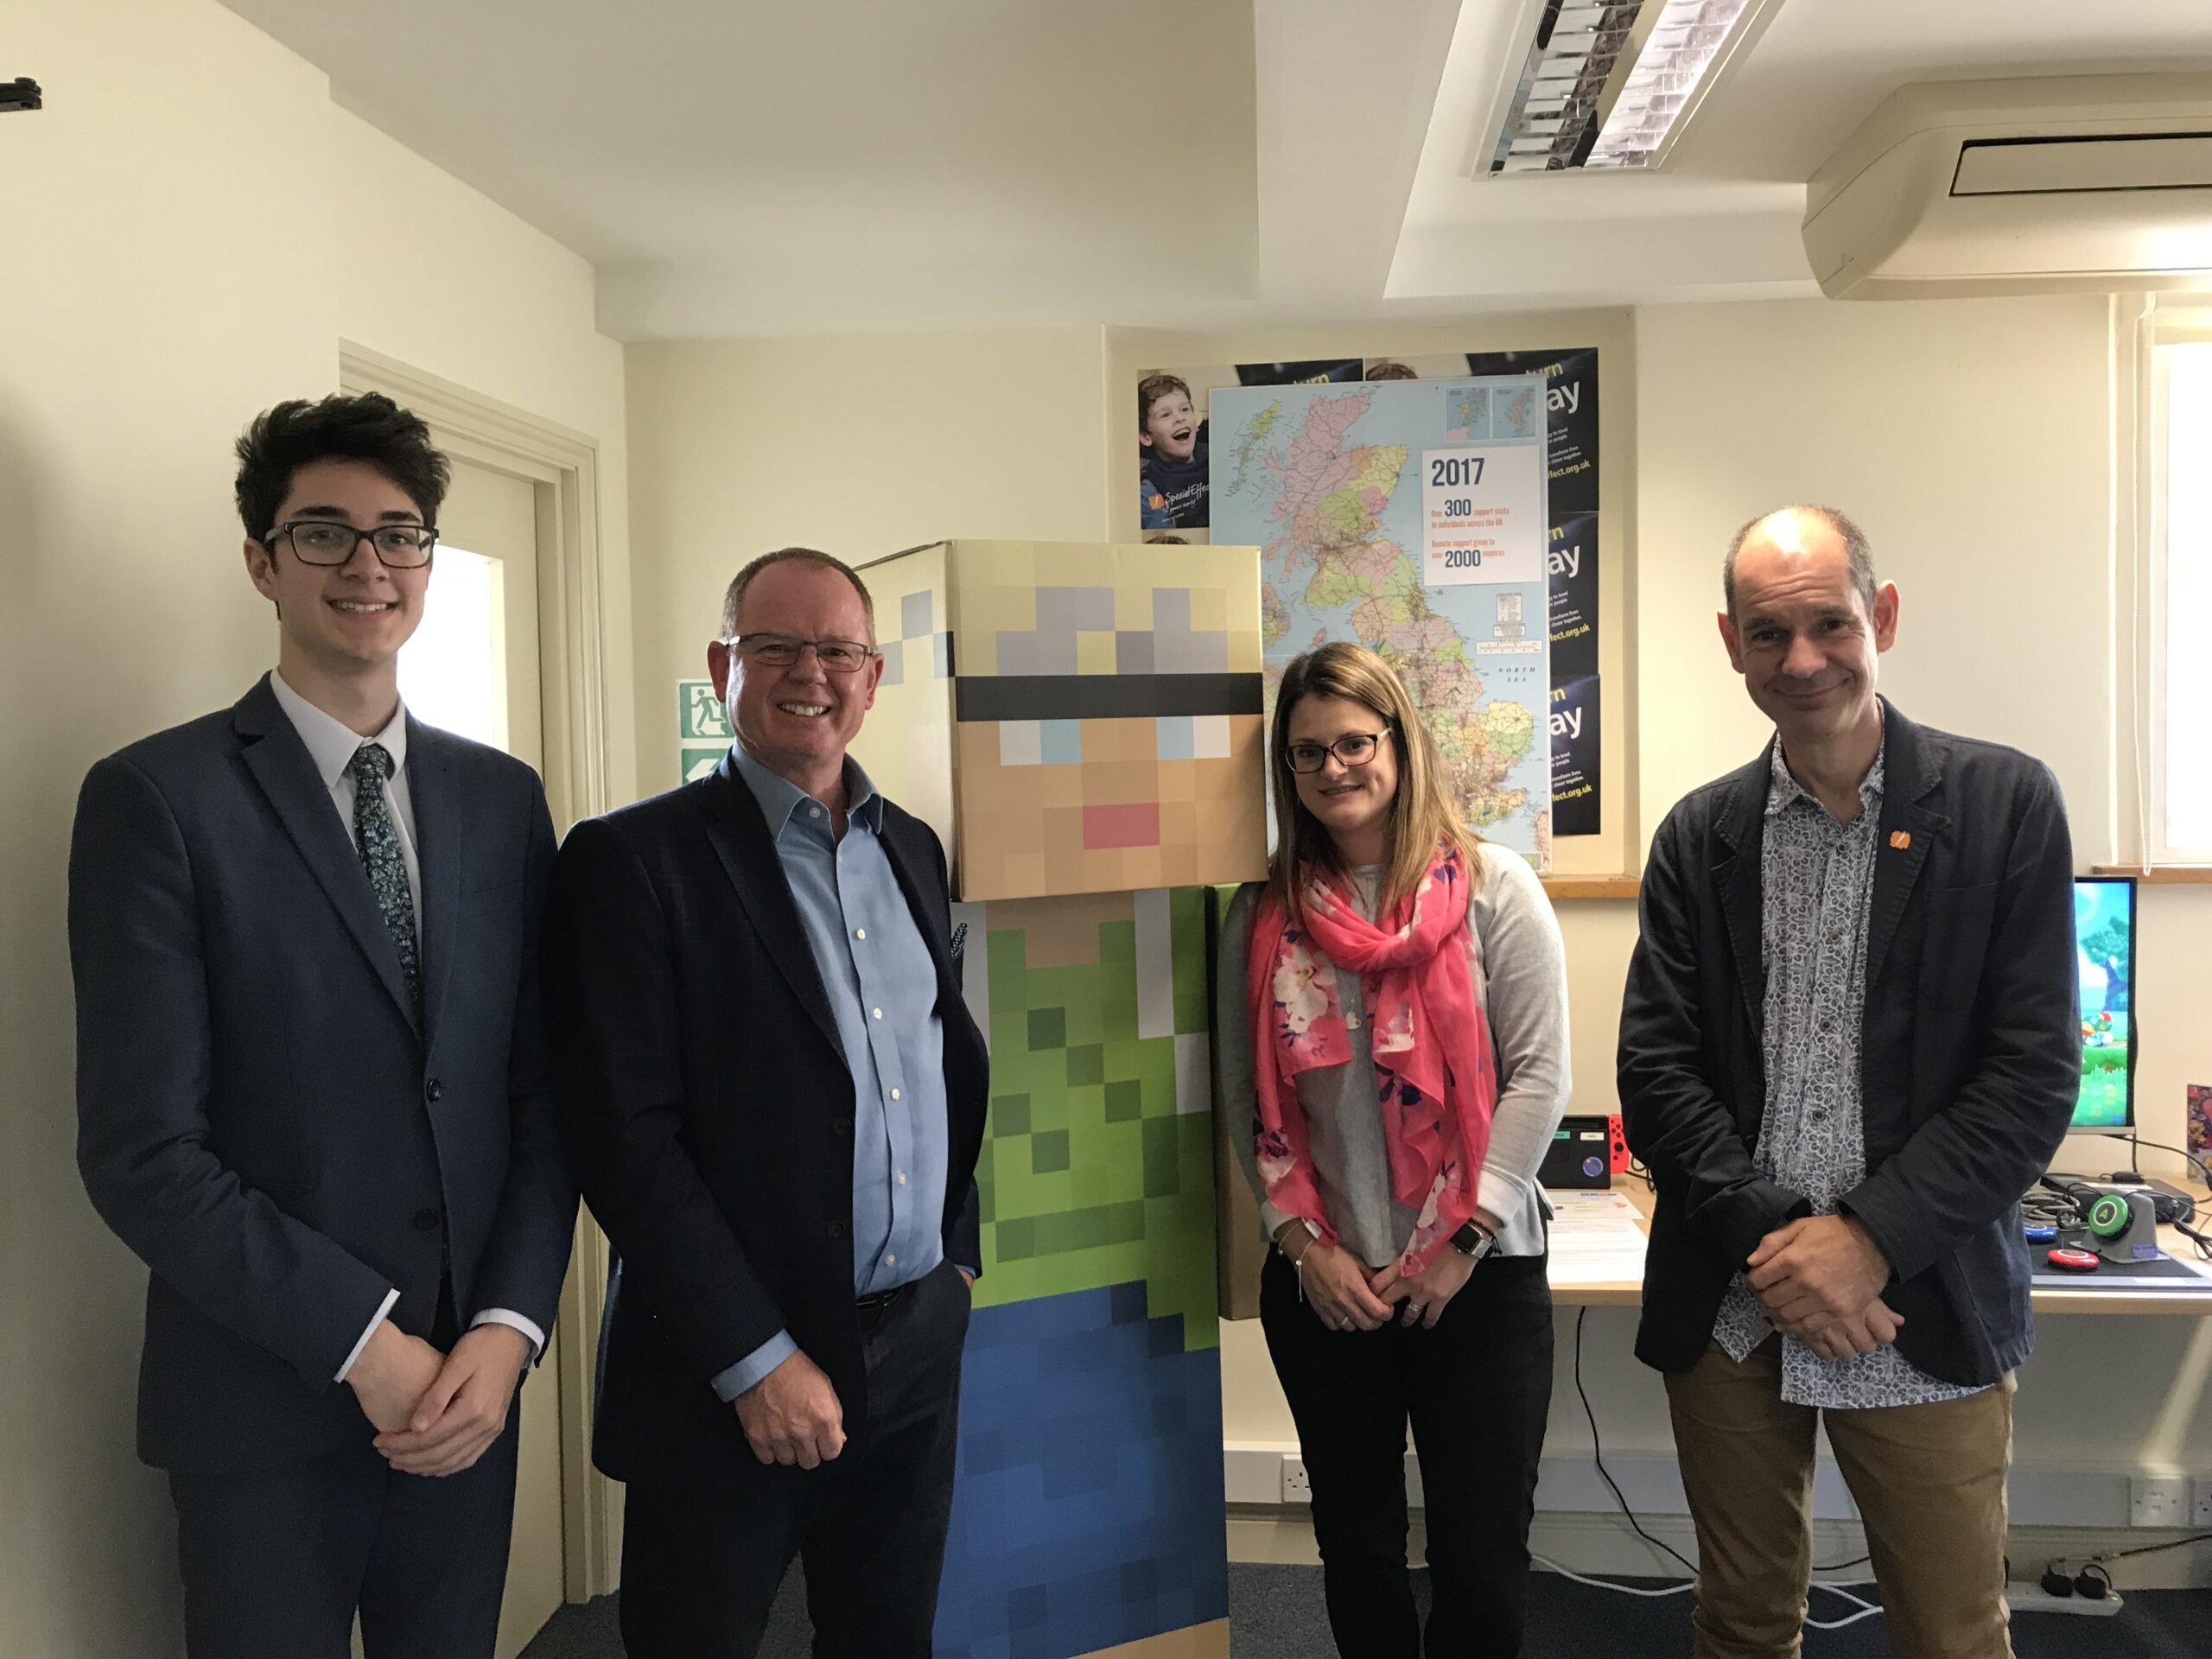 Whitley Stimpson visits SpecialEffect